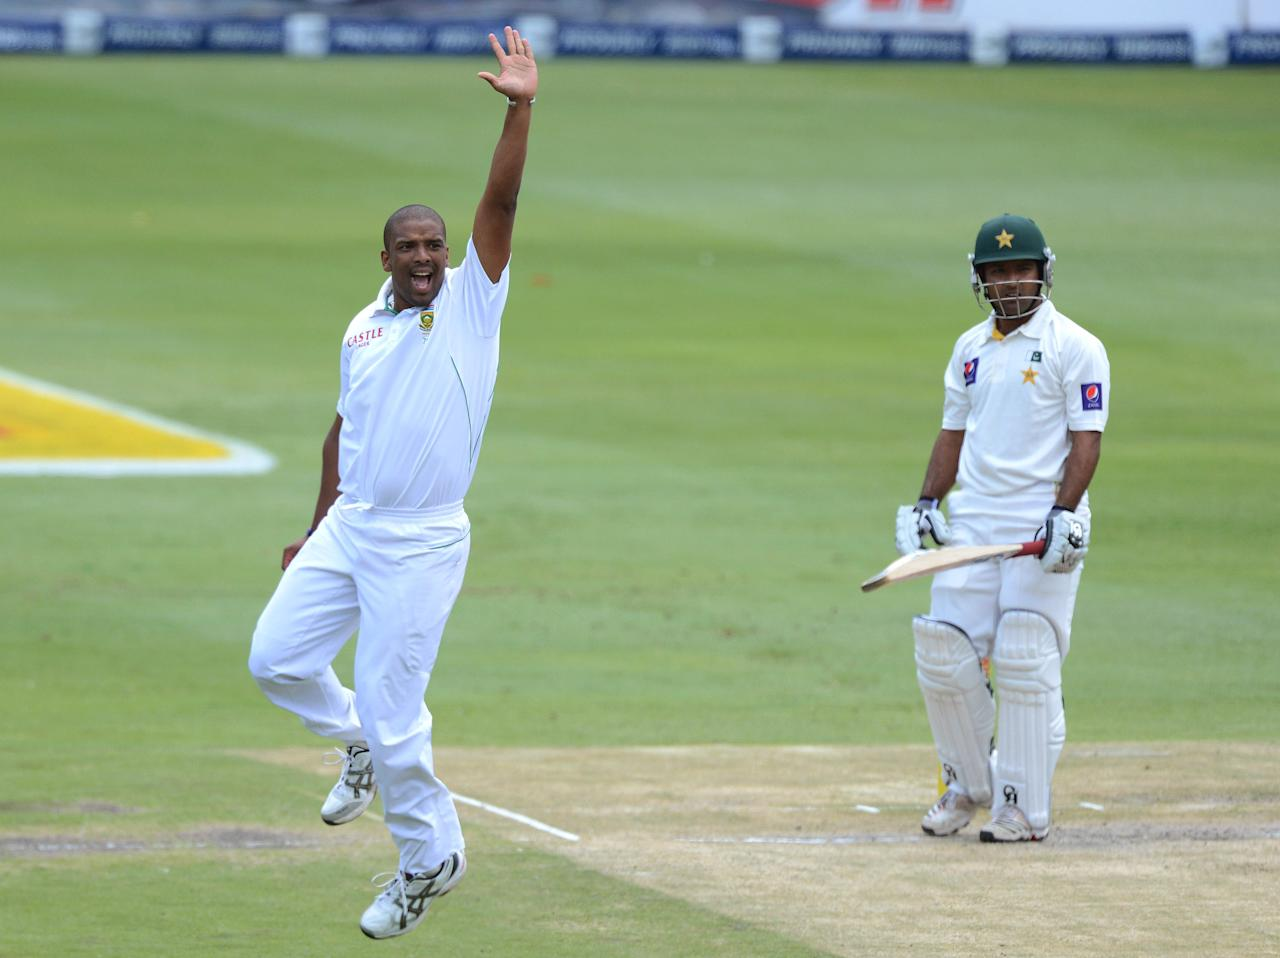 JOHANNESBURG, SOUTH AFRICA - FEBRUARY 02:  Vernon Philander of South Africa celebrates the wicket of Asad Shafiq of Pakistan during day 2 of the 1st Test match between South Africa and Pakistan at Bidvest Wanderers Stadium on February 02, 2013 in Johannesburg, South Africa.  (Photo by Duif du Toit/Gallo Images/Getty Images)